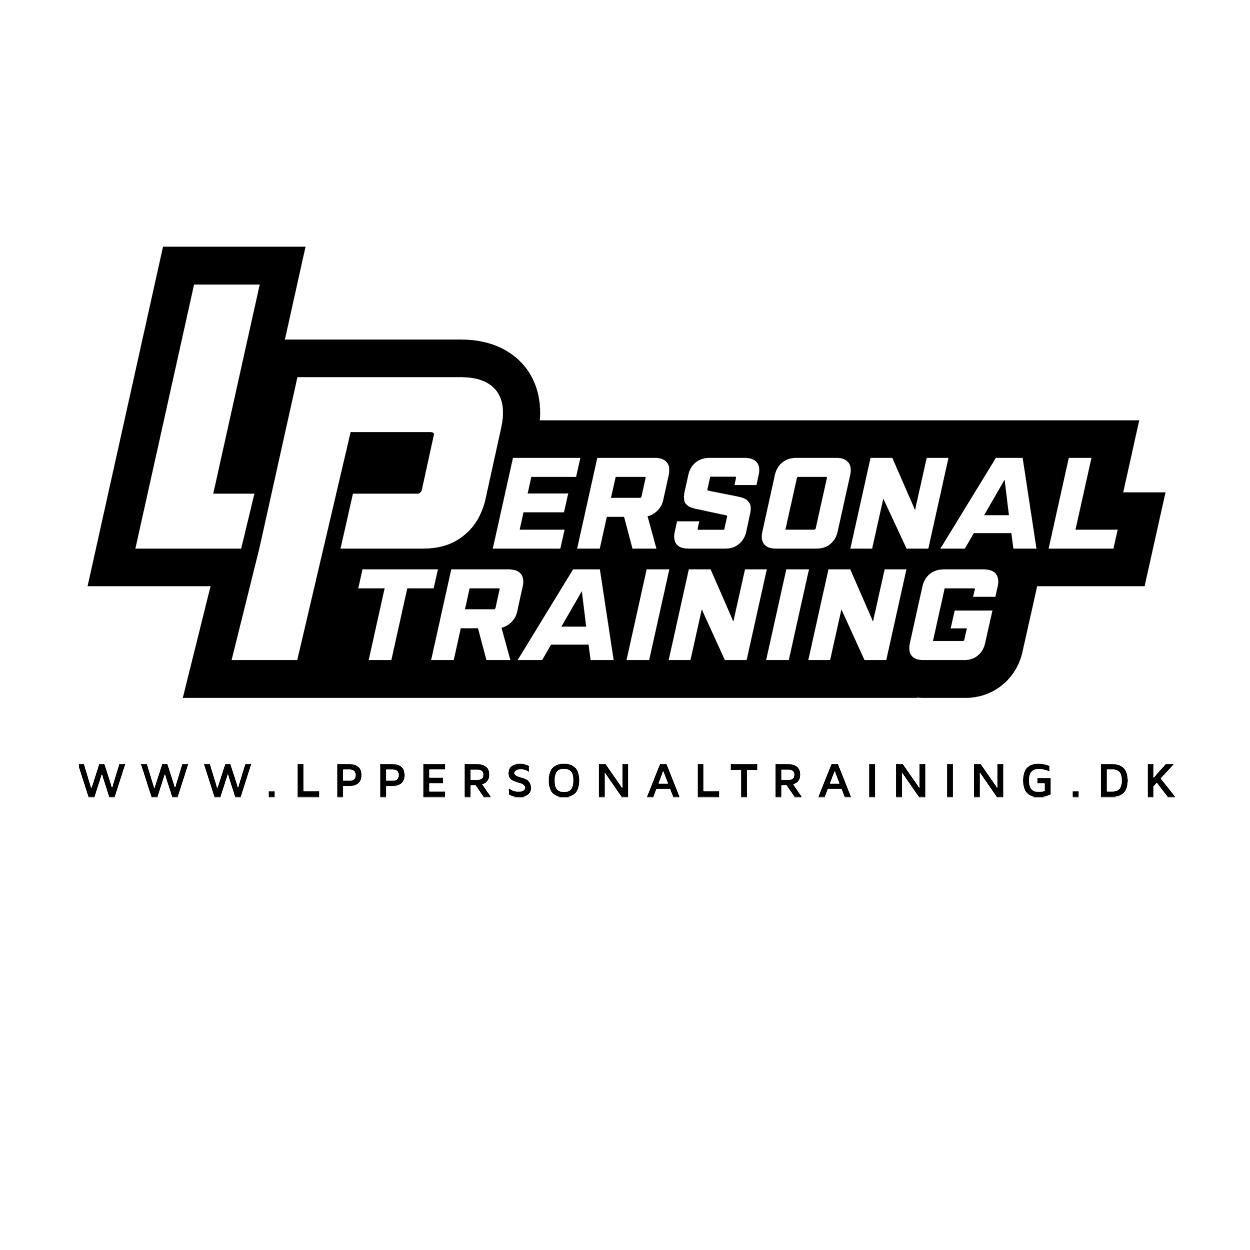 Lp%20personal%20training